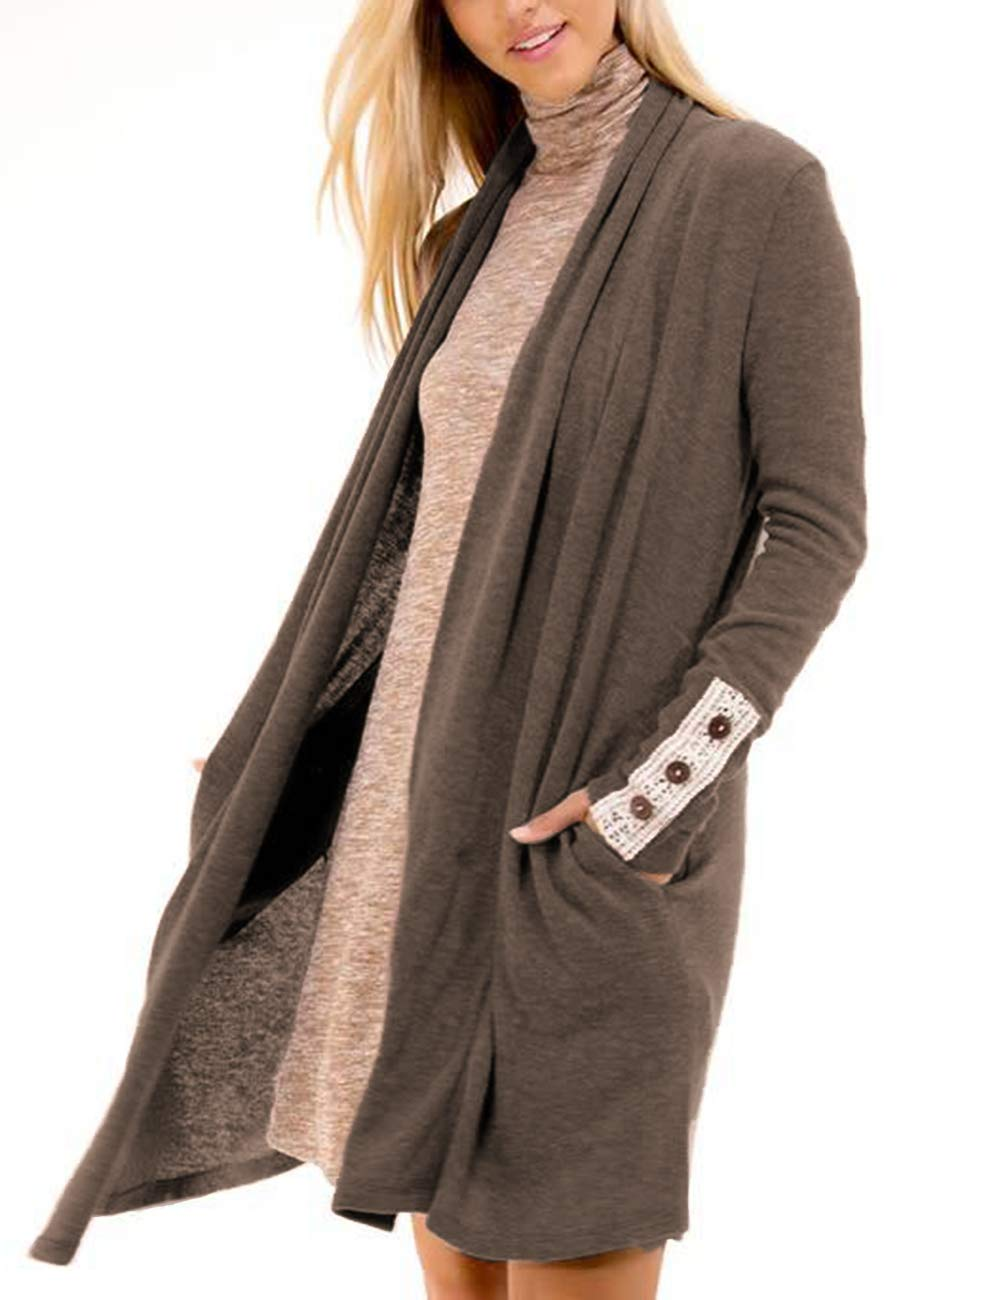 ACKKIA Women's Lightweight Open Front Shawl Collar Long Sleeve Knit Cardigan Deep Taupe Size XXL